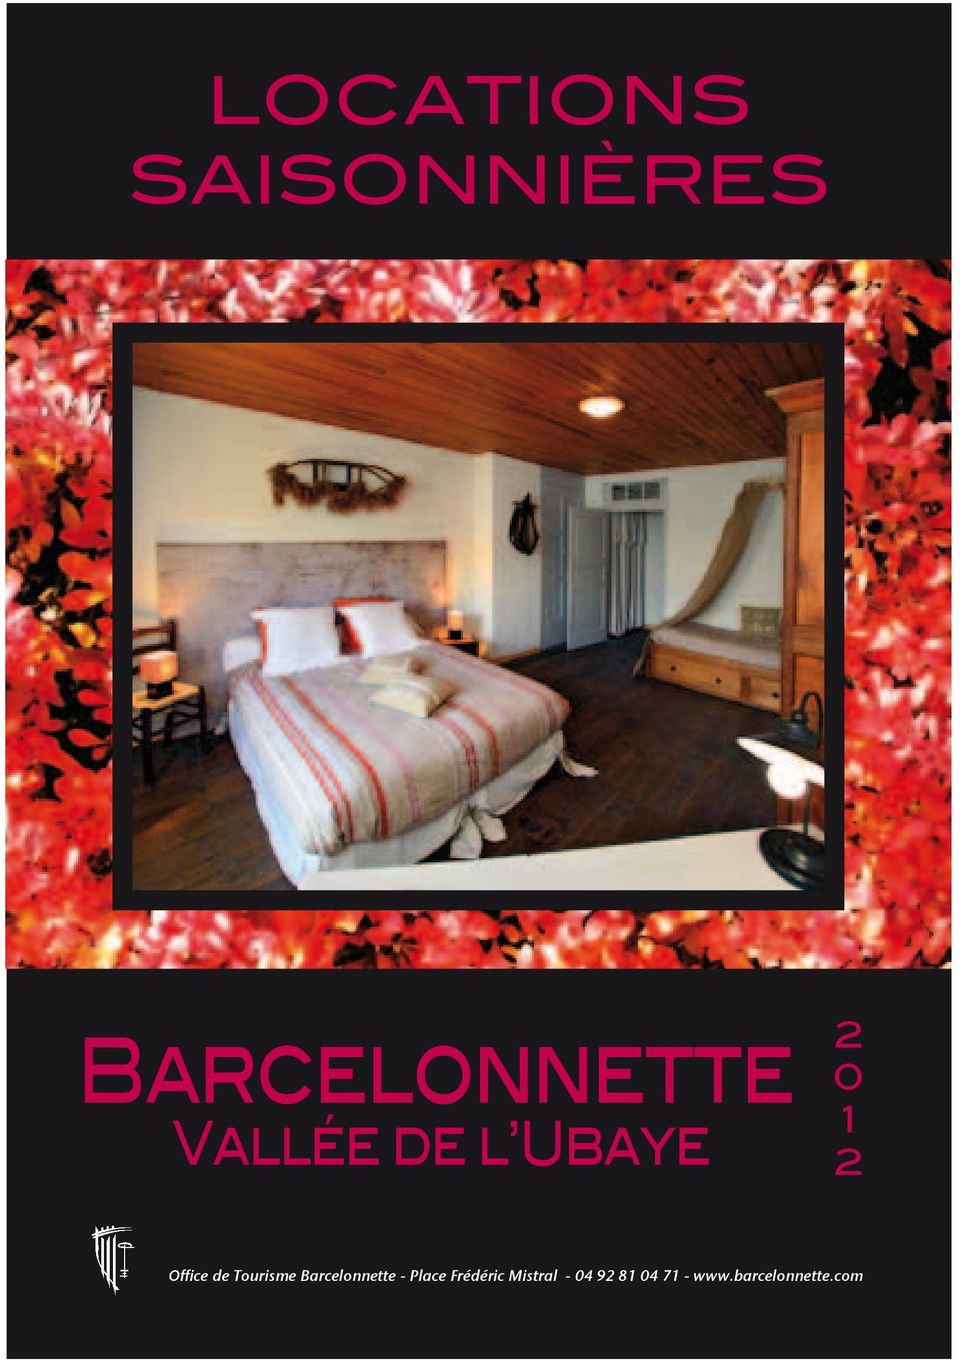 Barcelonnette locations saisonni res vall e de l ubaye pdf - Office tourisme barcelonette ...